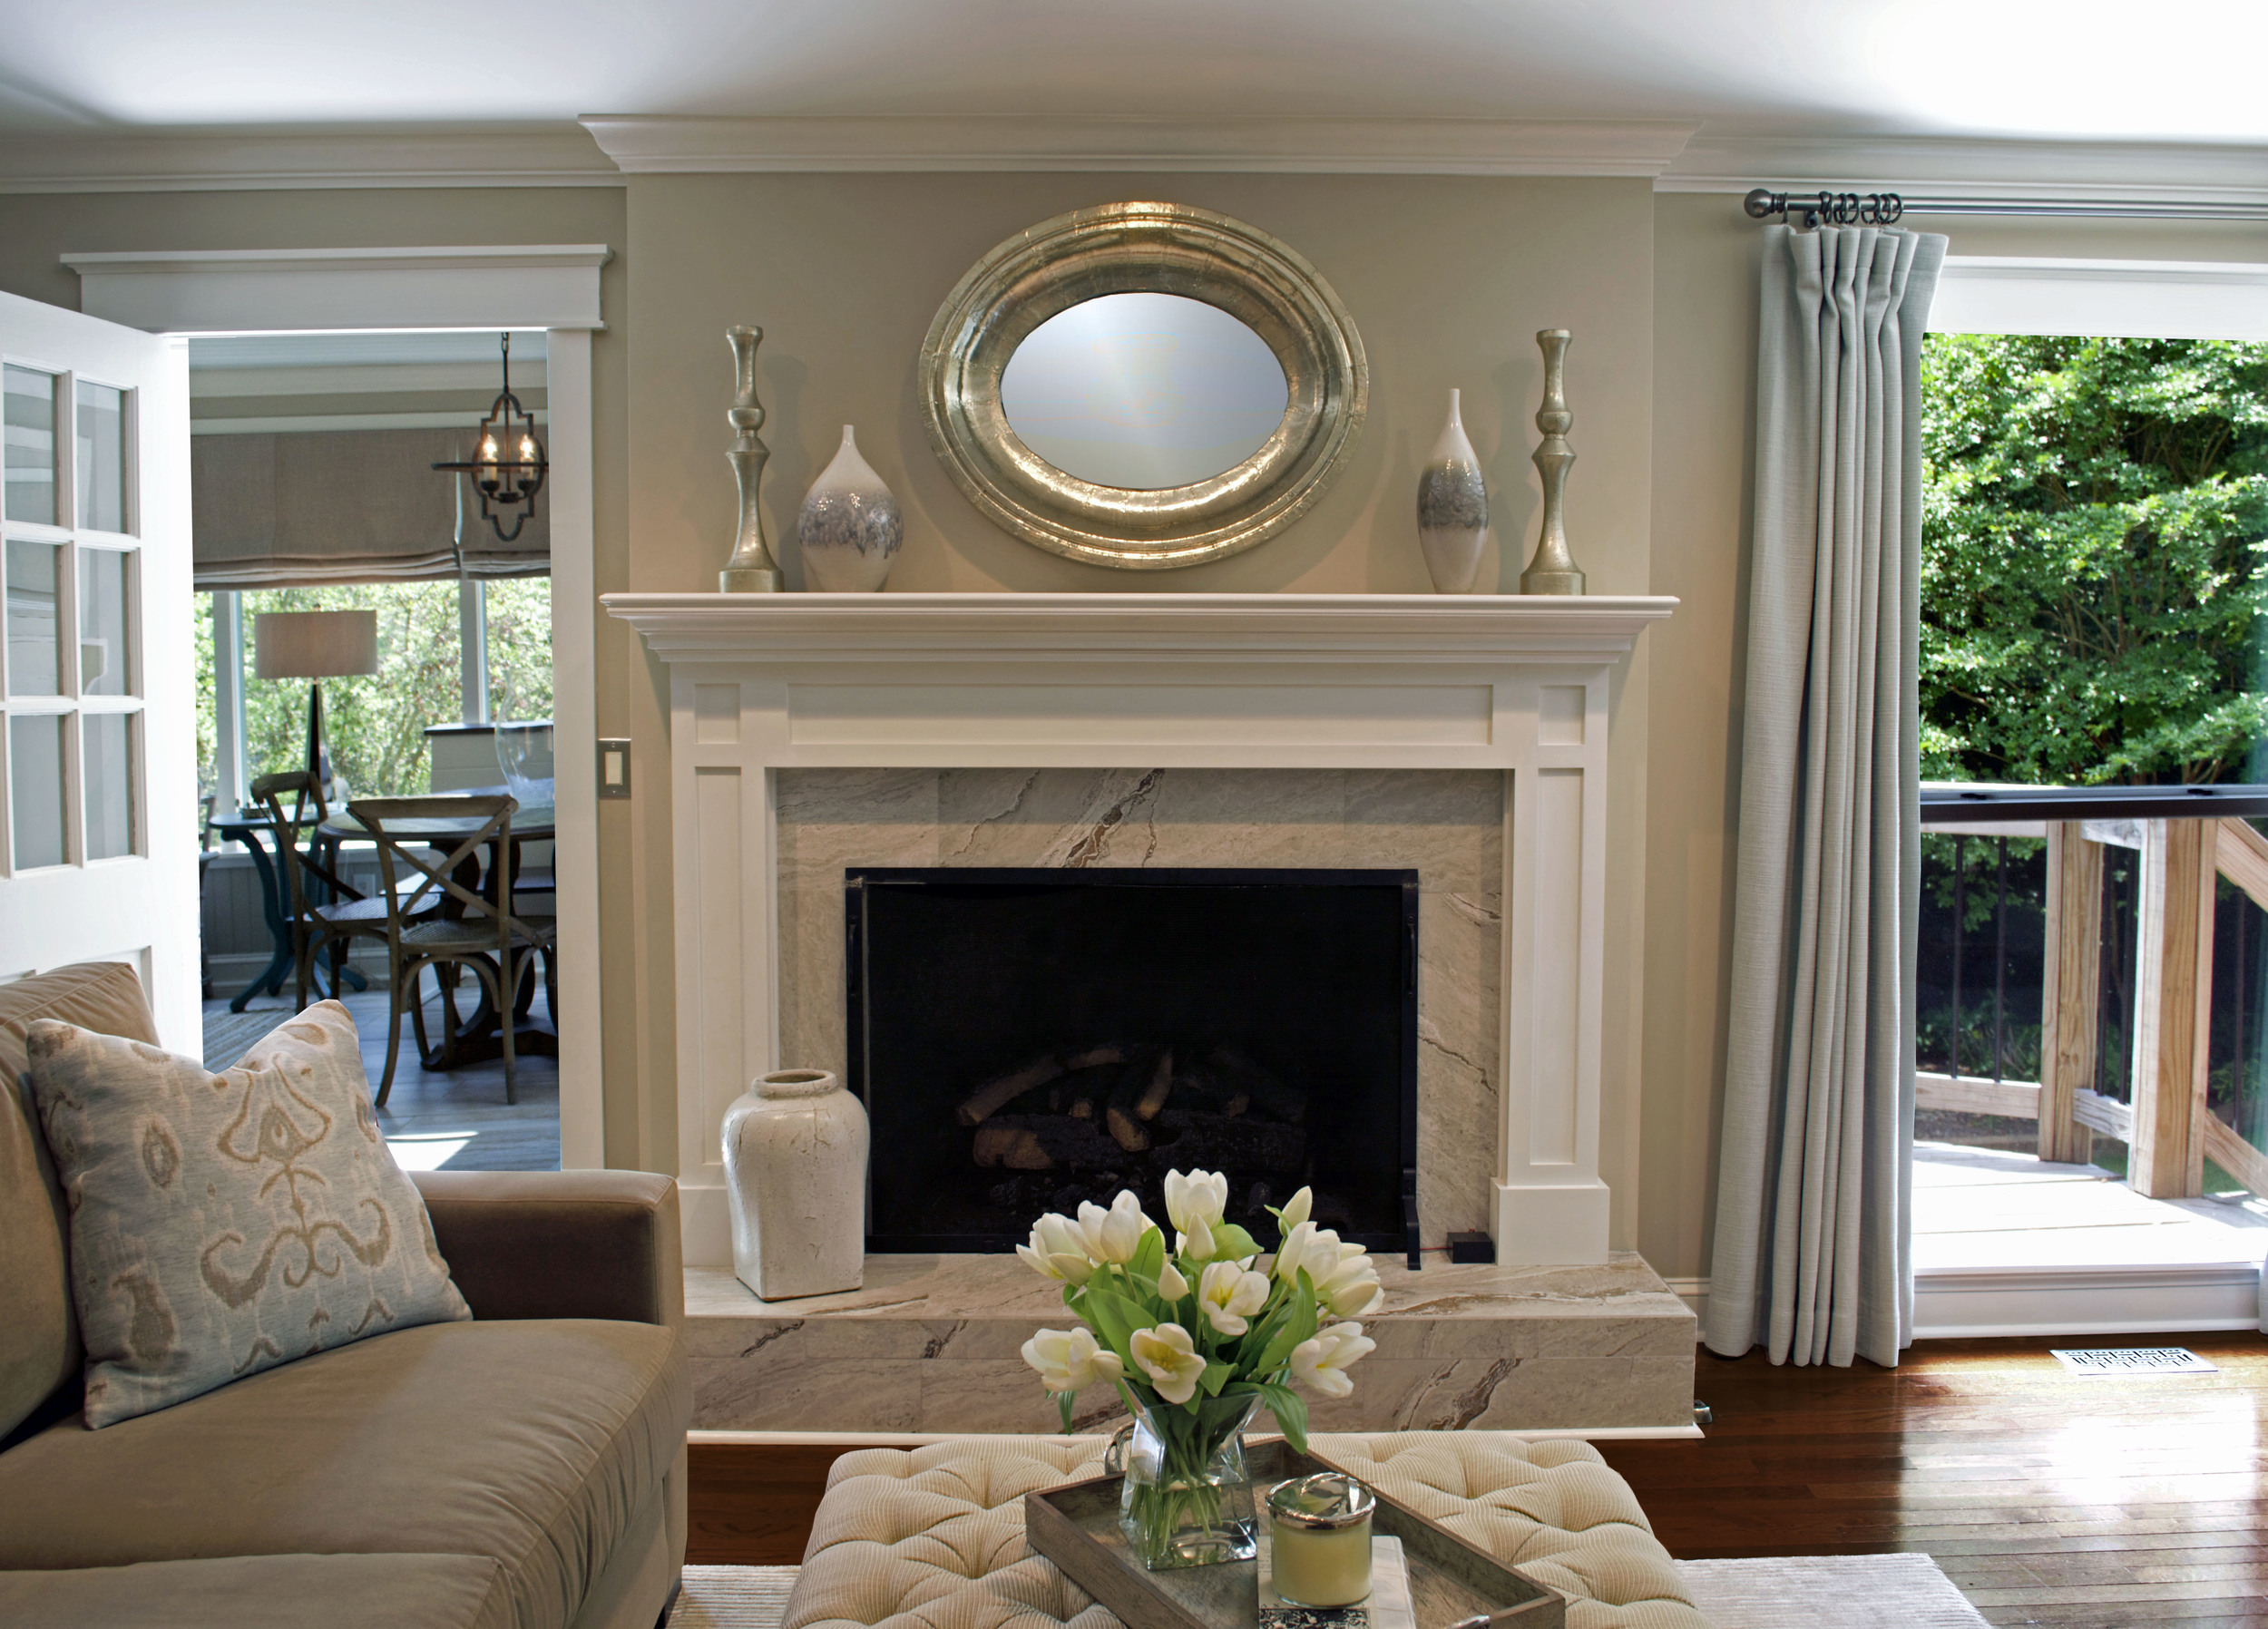 Fireplace View from Couch (2).jpg